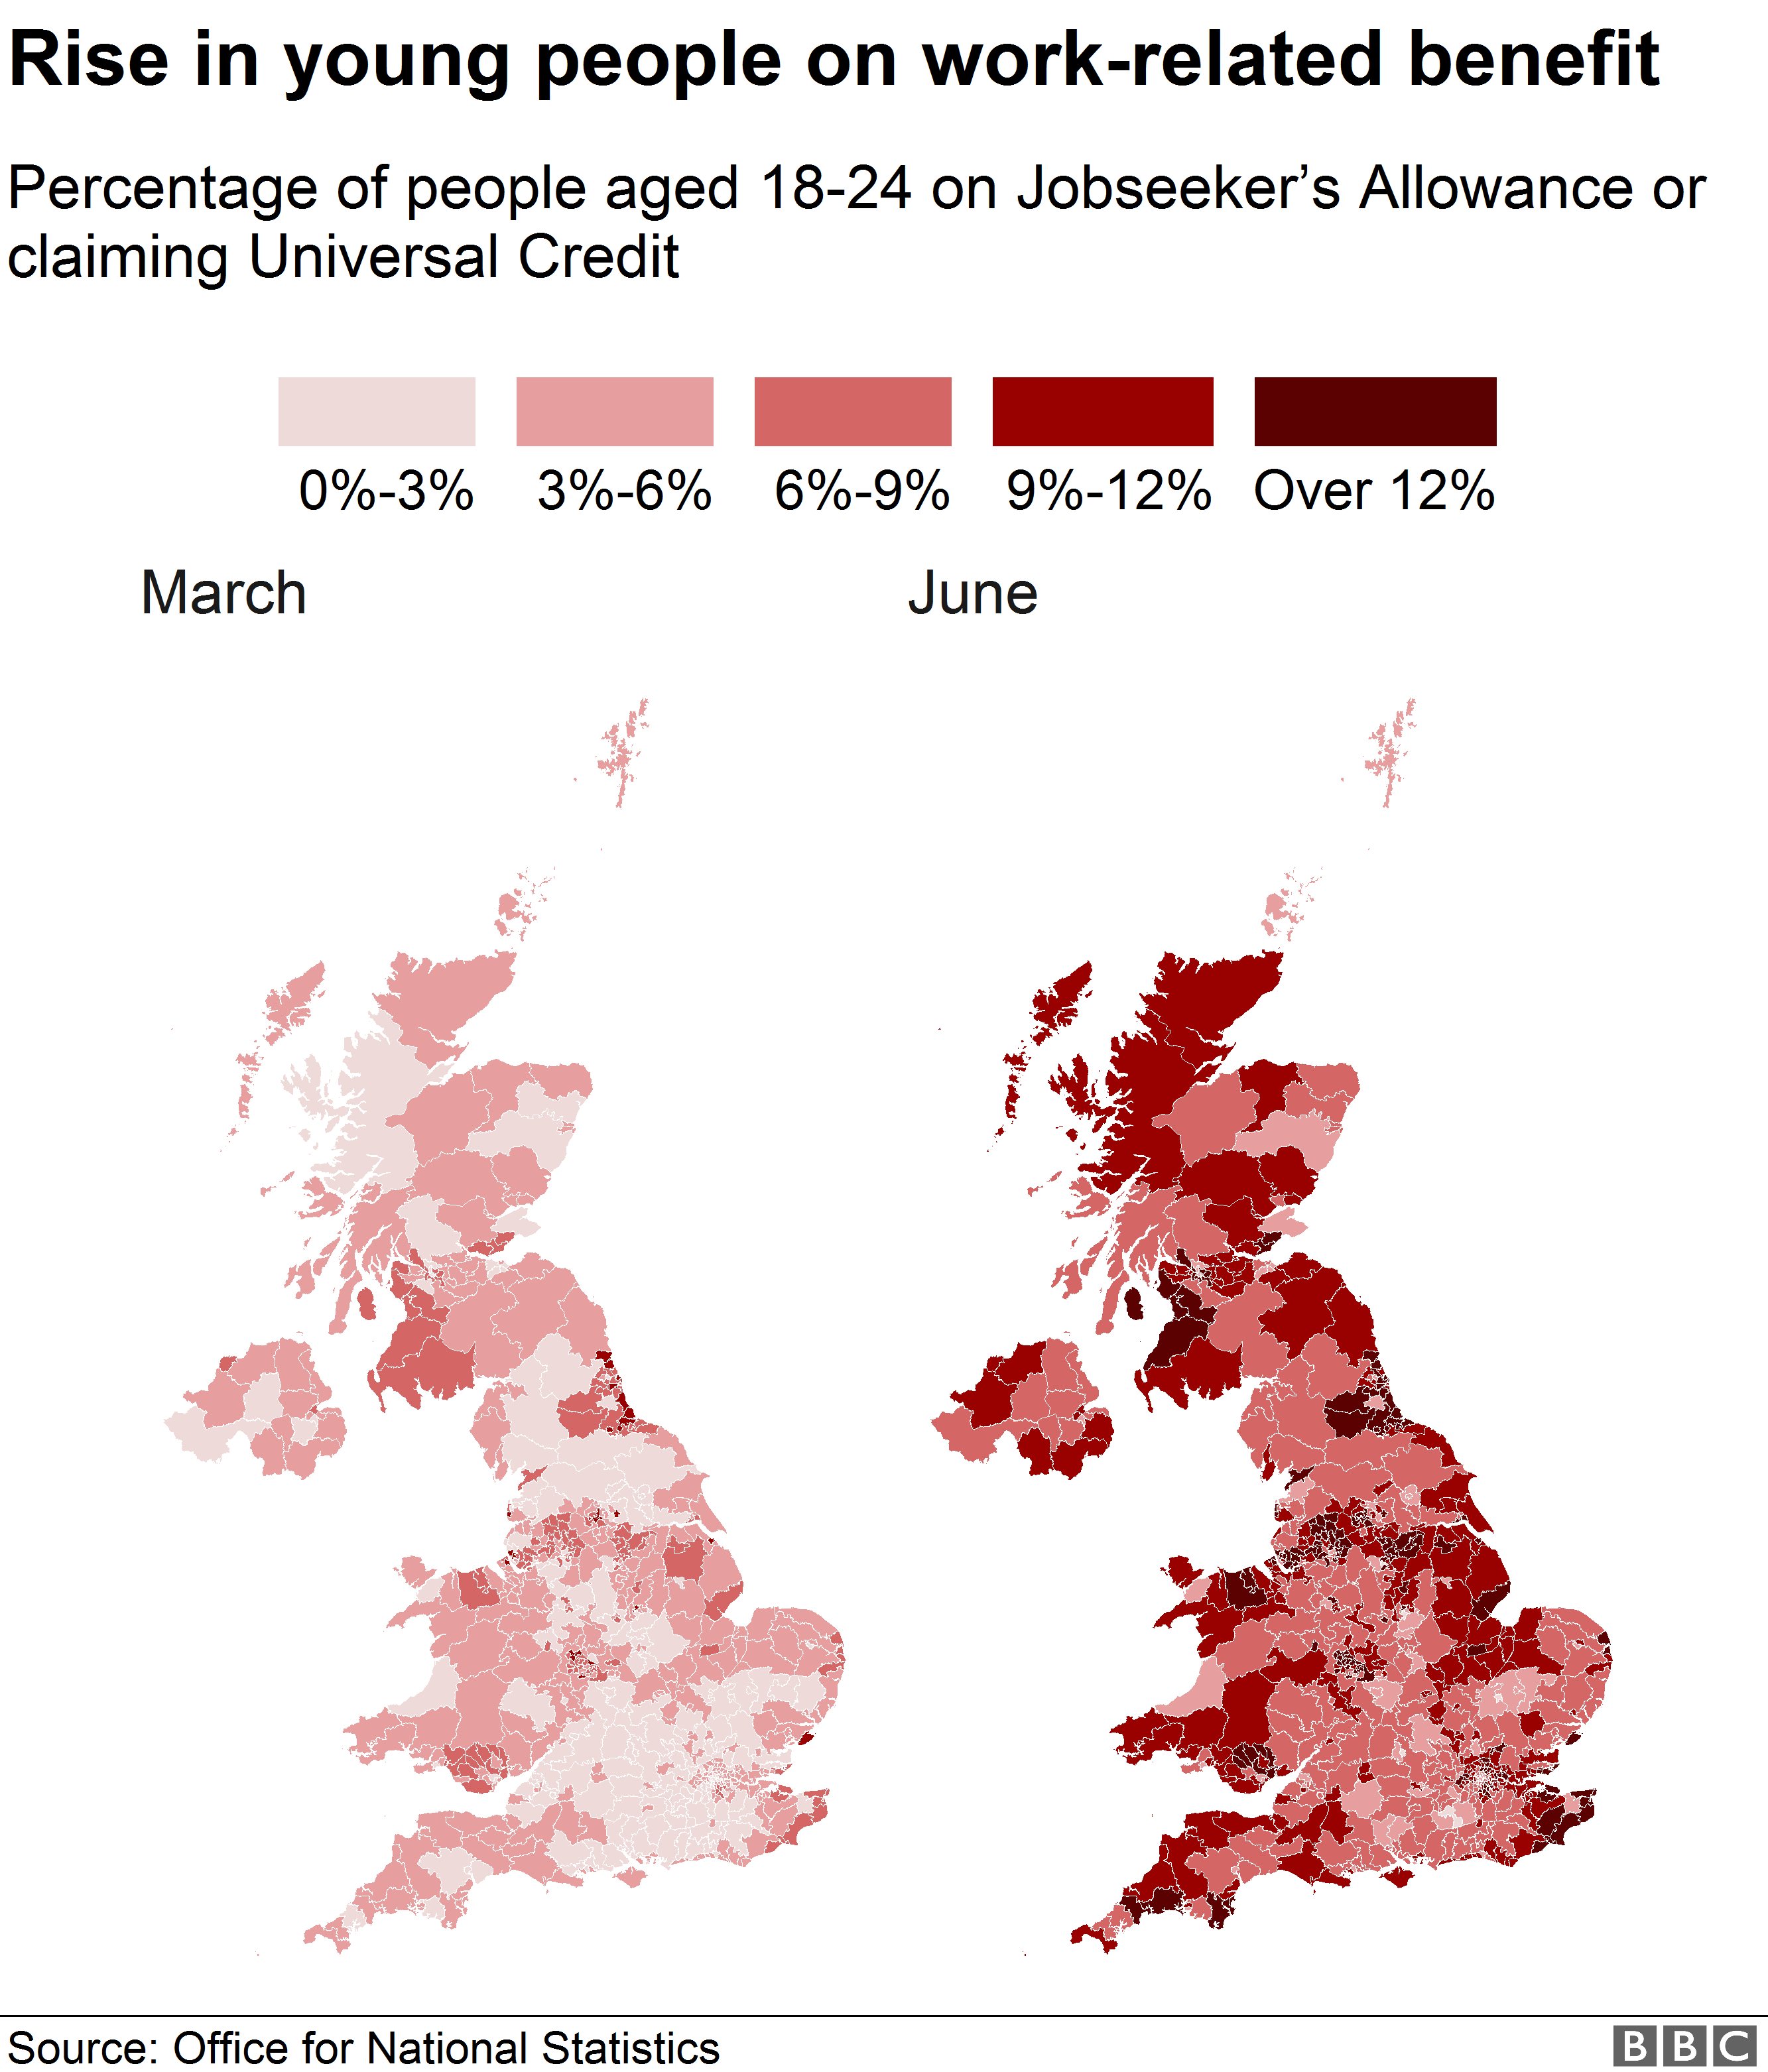 A map of the UK shows where the highest proportion of out-of-work benefit claimants are.